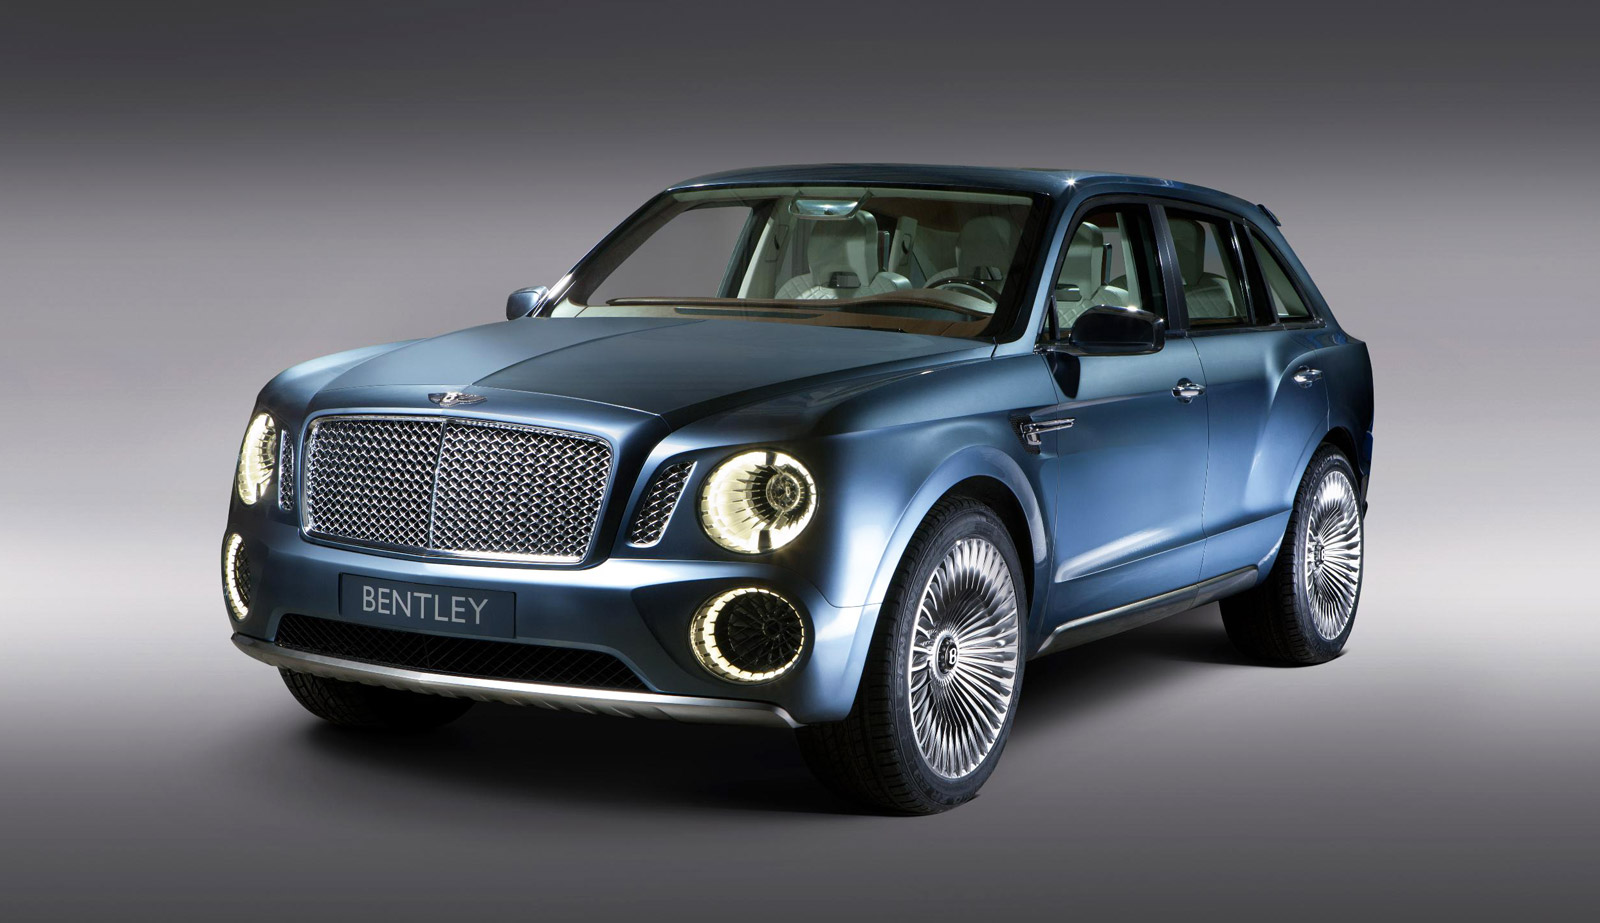 http://images.thecarconnection.com/hug/2012-bentley-exp-9-f-suv-concept_100388814_h.jpg